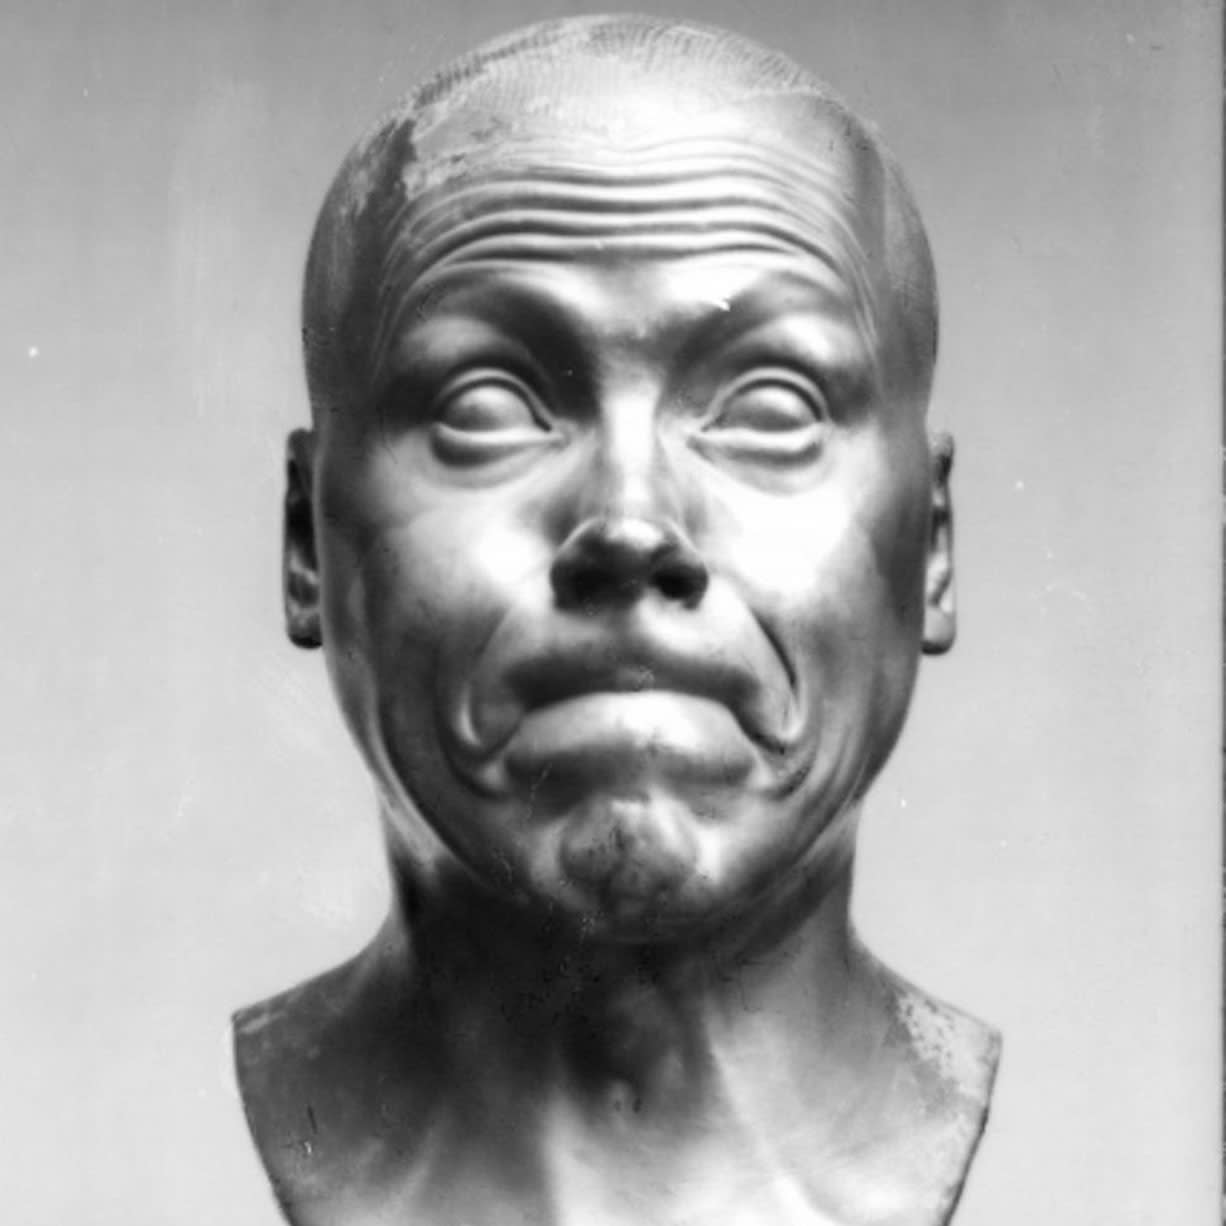 Bust sculpture of man pursing his lips with eyebrows raised